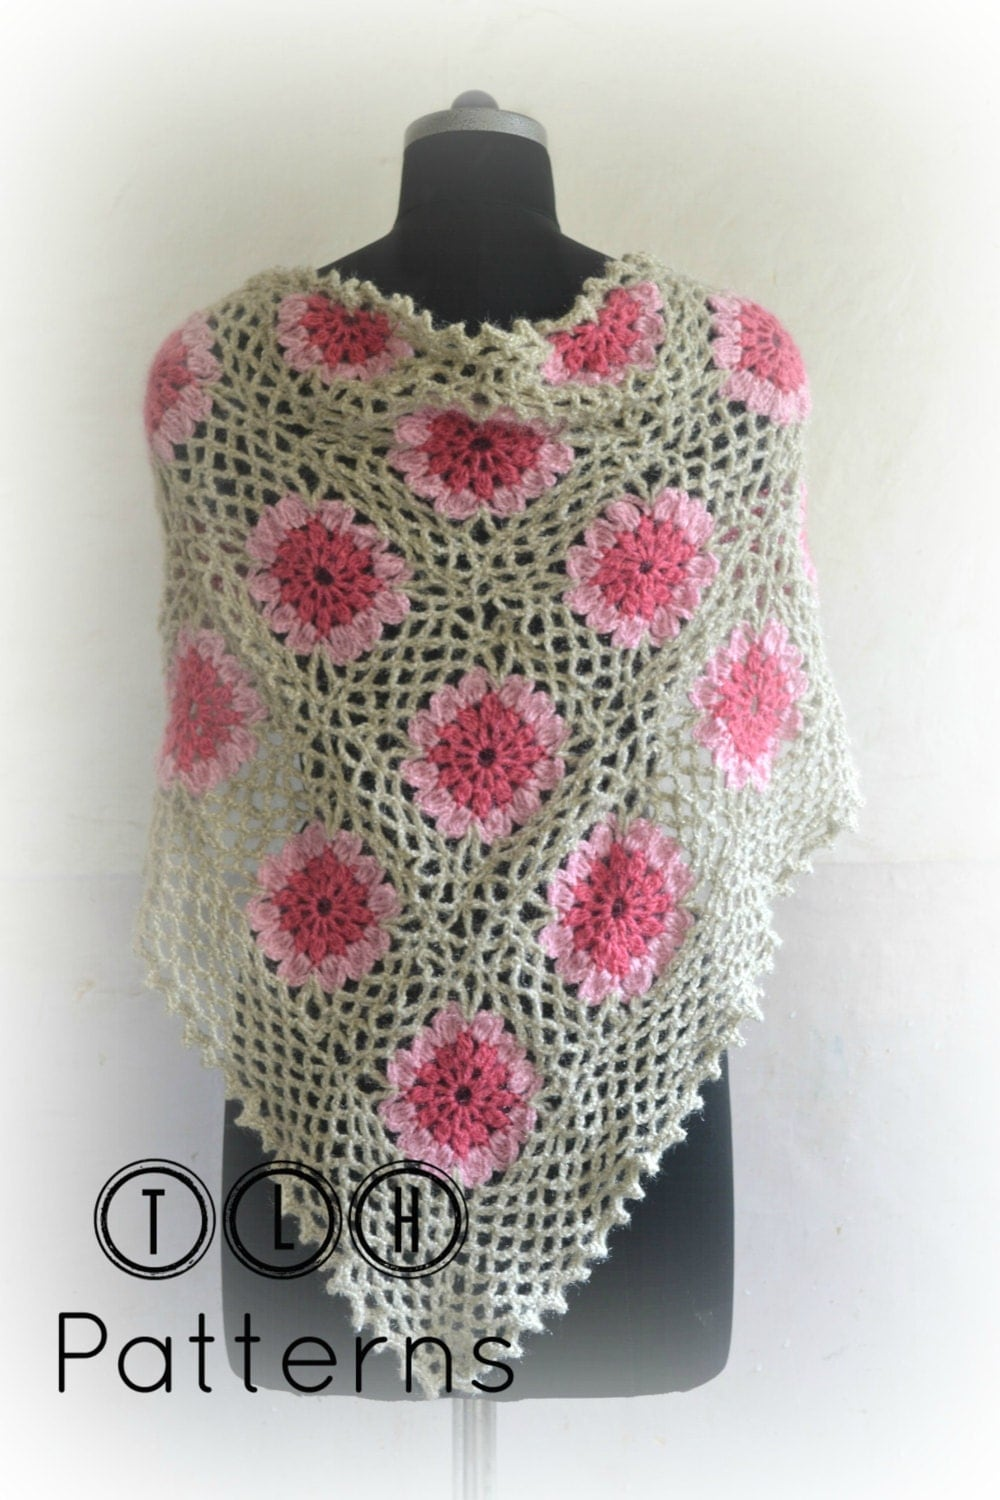 Crochet pattern crochet shawl pattern crochet triangle zoom bankloansurffo Image collections